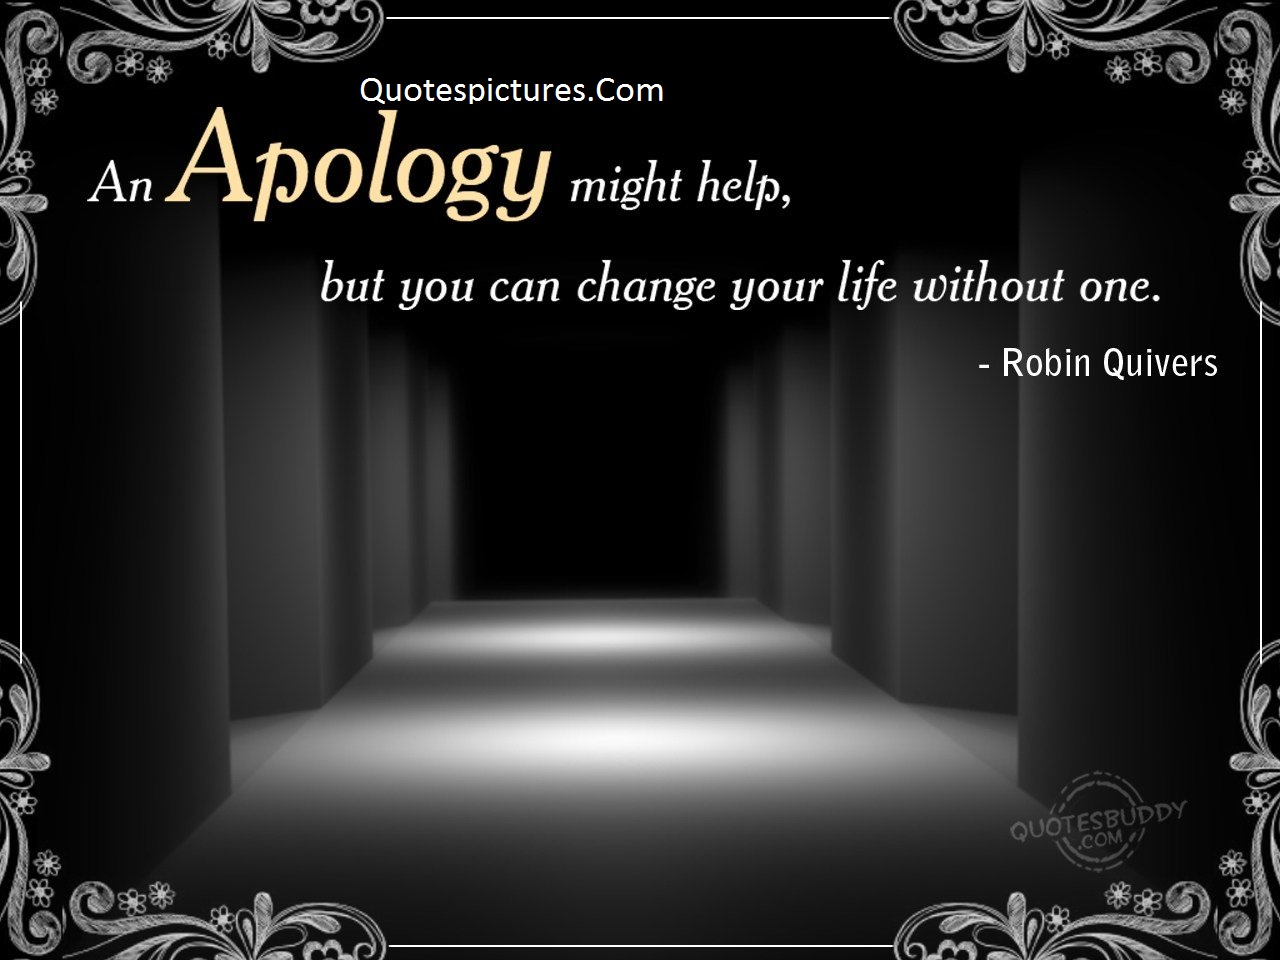 Apology Quotes - An Apology You Can Change Your Life Without One By Robin Quivers